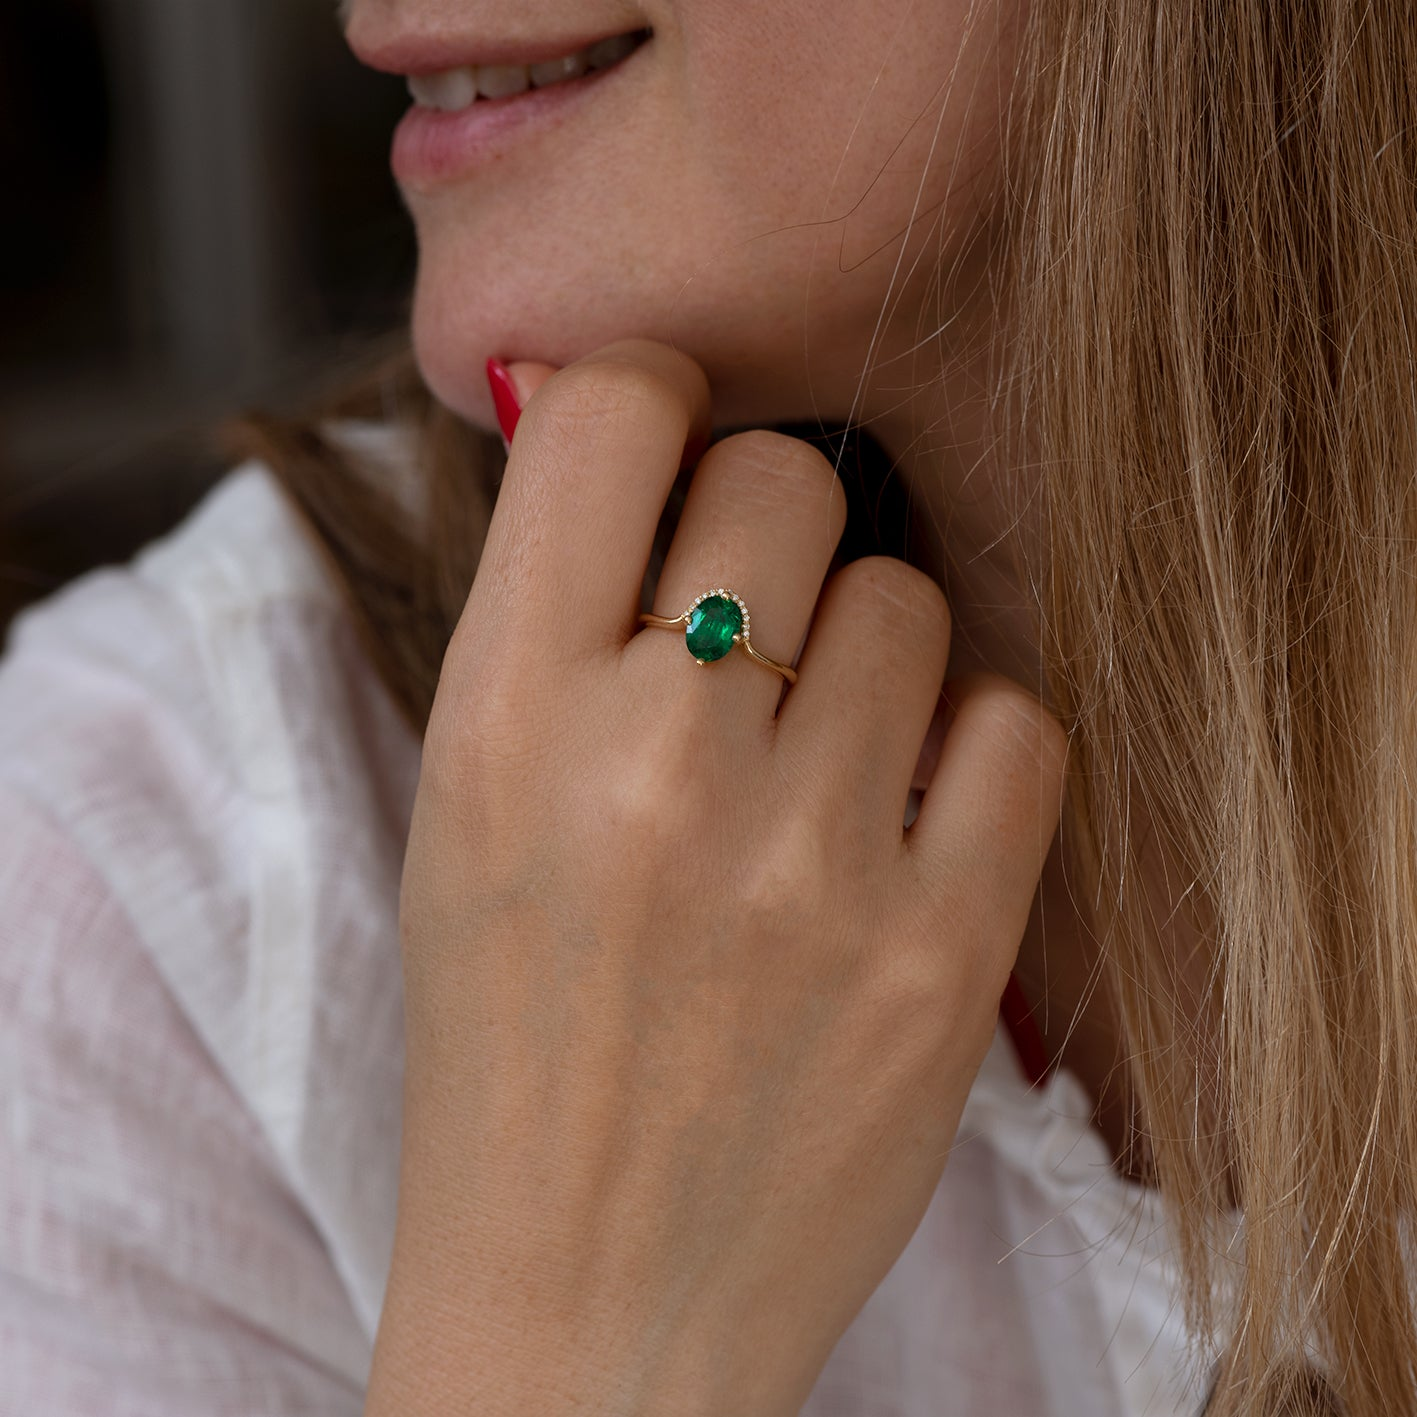 Floating Oval-Cut Emerald engagement ring6